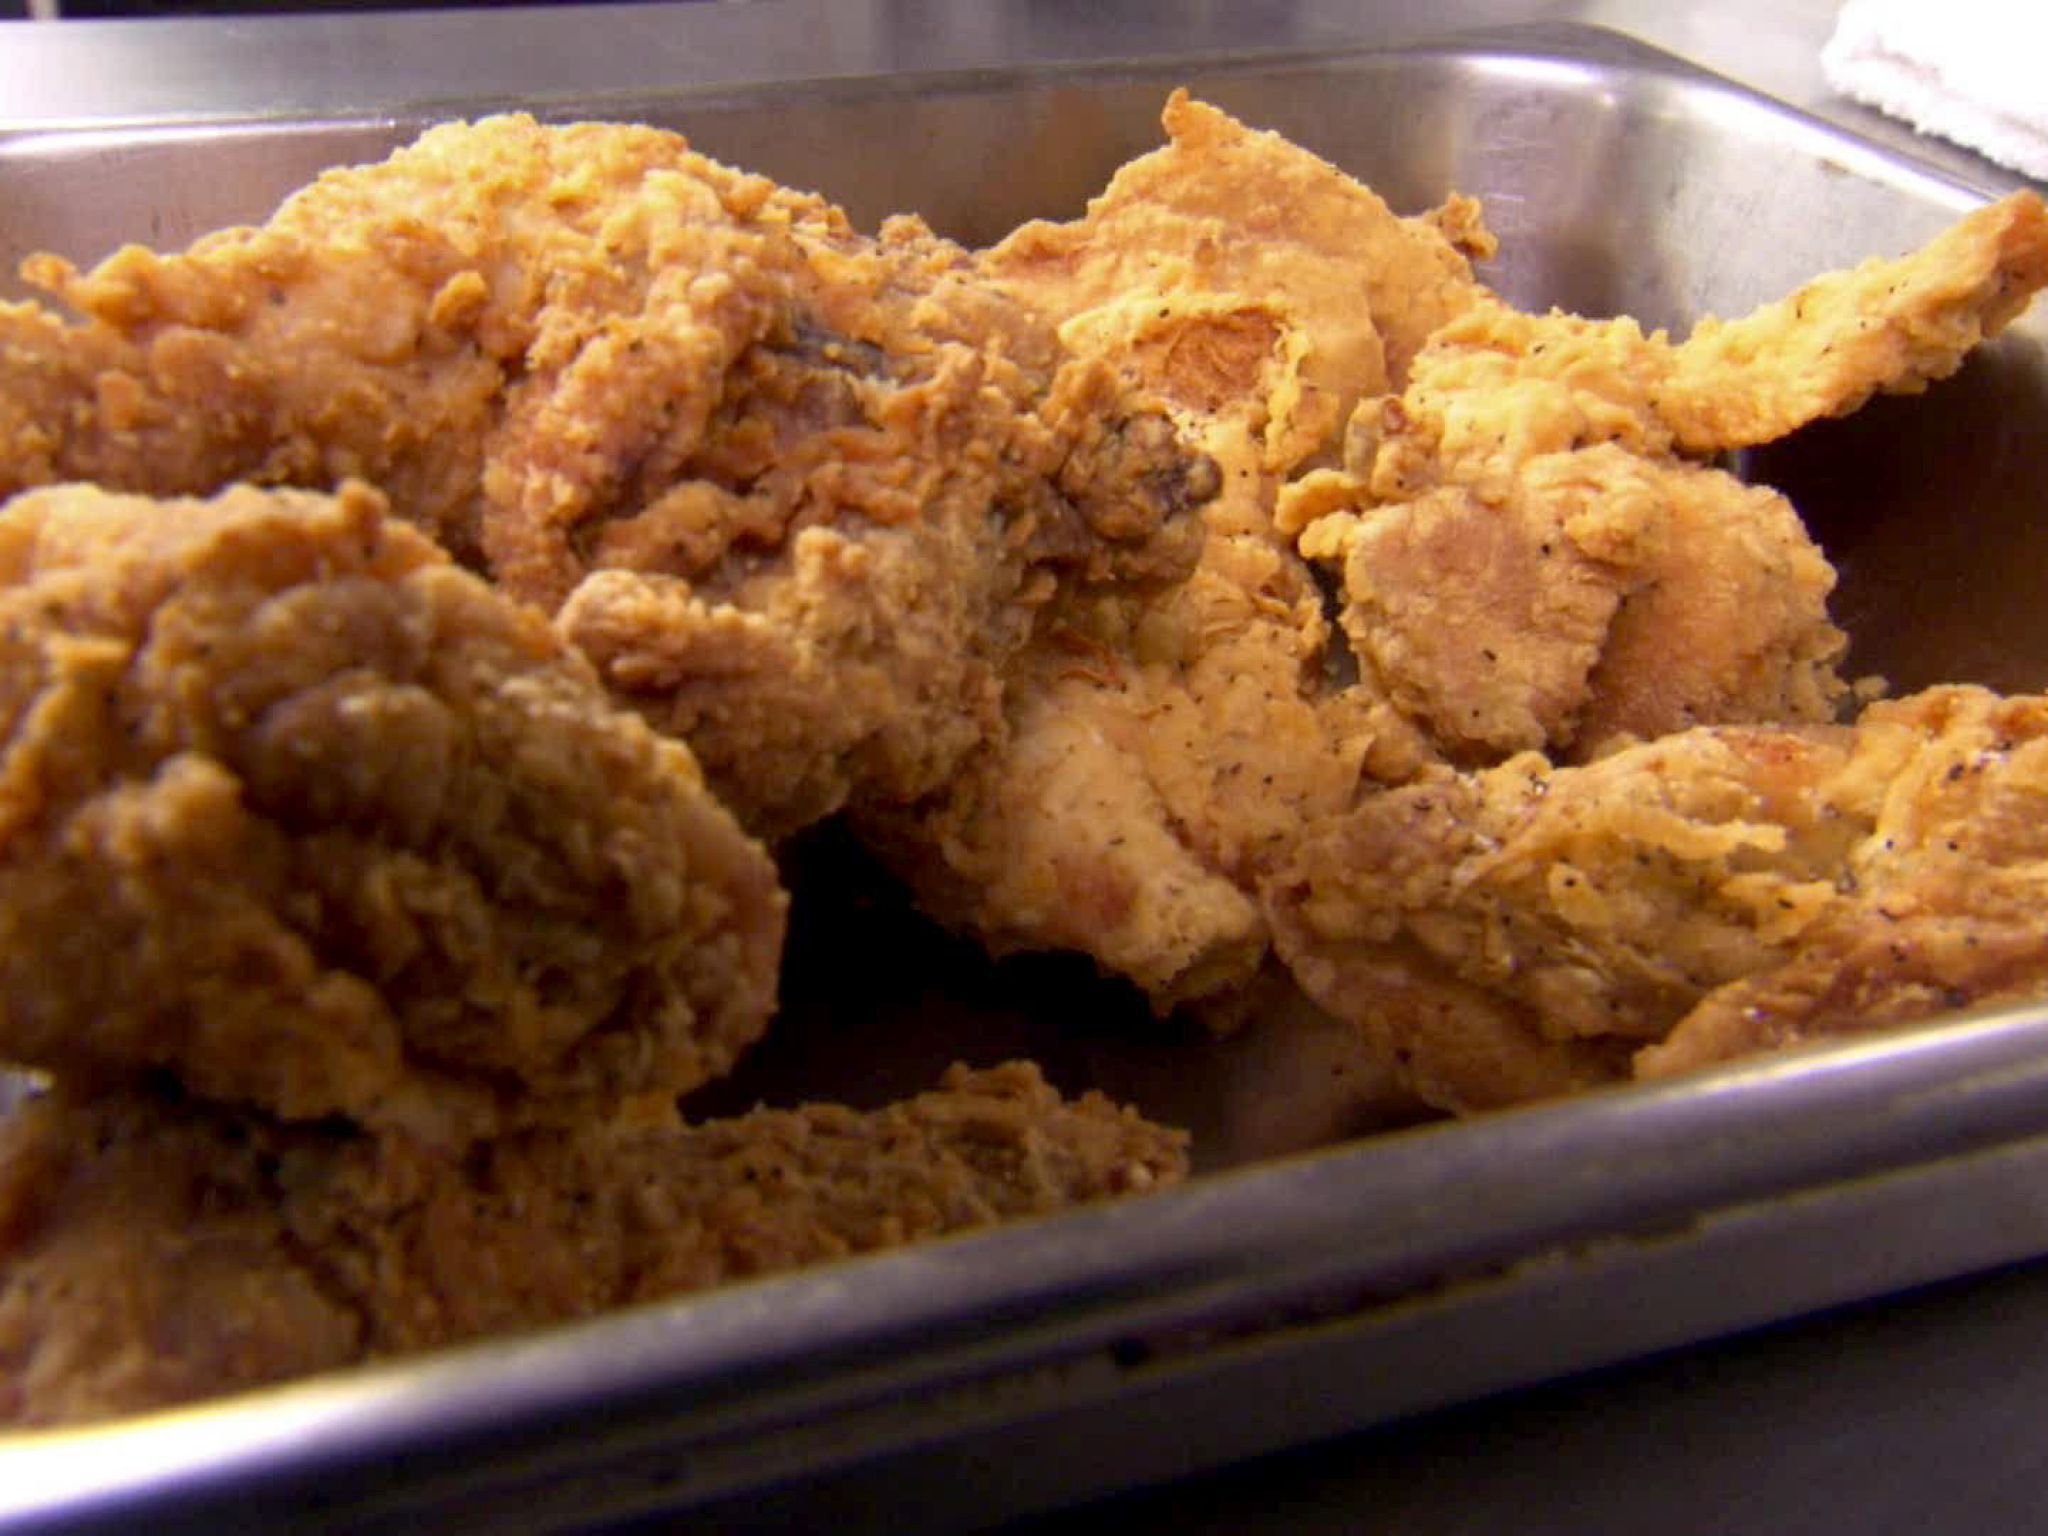 Southern Fried Chicken Recipe Food Network Recipes Fried Chicken Recipes Robert Irvine Recipes